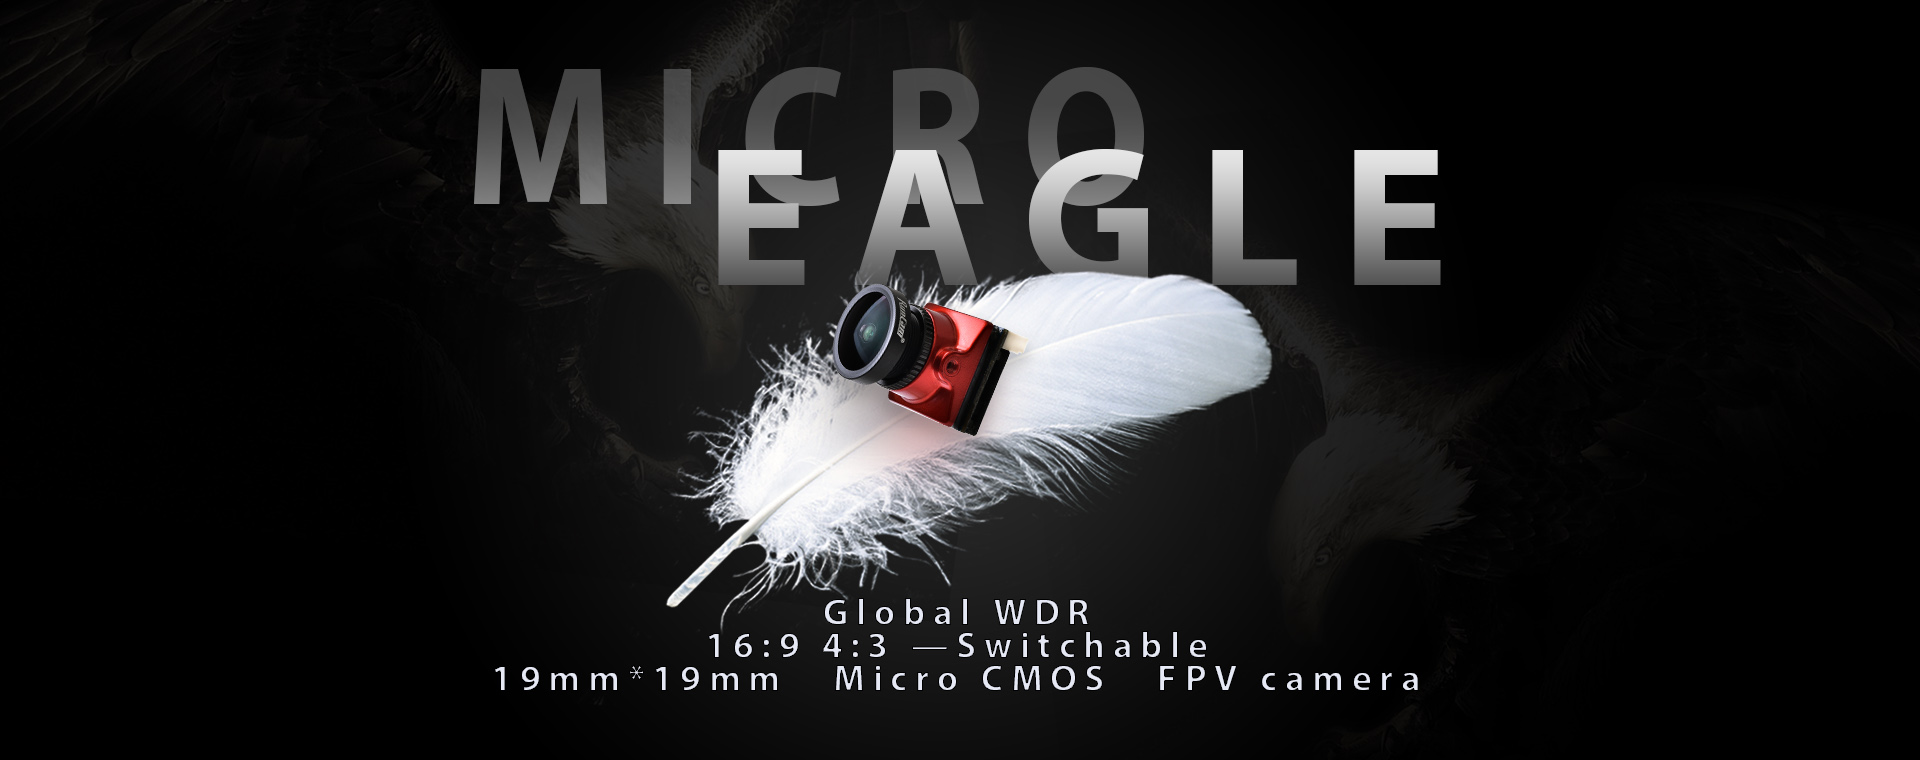 Runcam Micro Eagle Fpv Store 600tvl Camera Wire Diagram Product Description